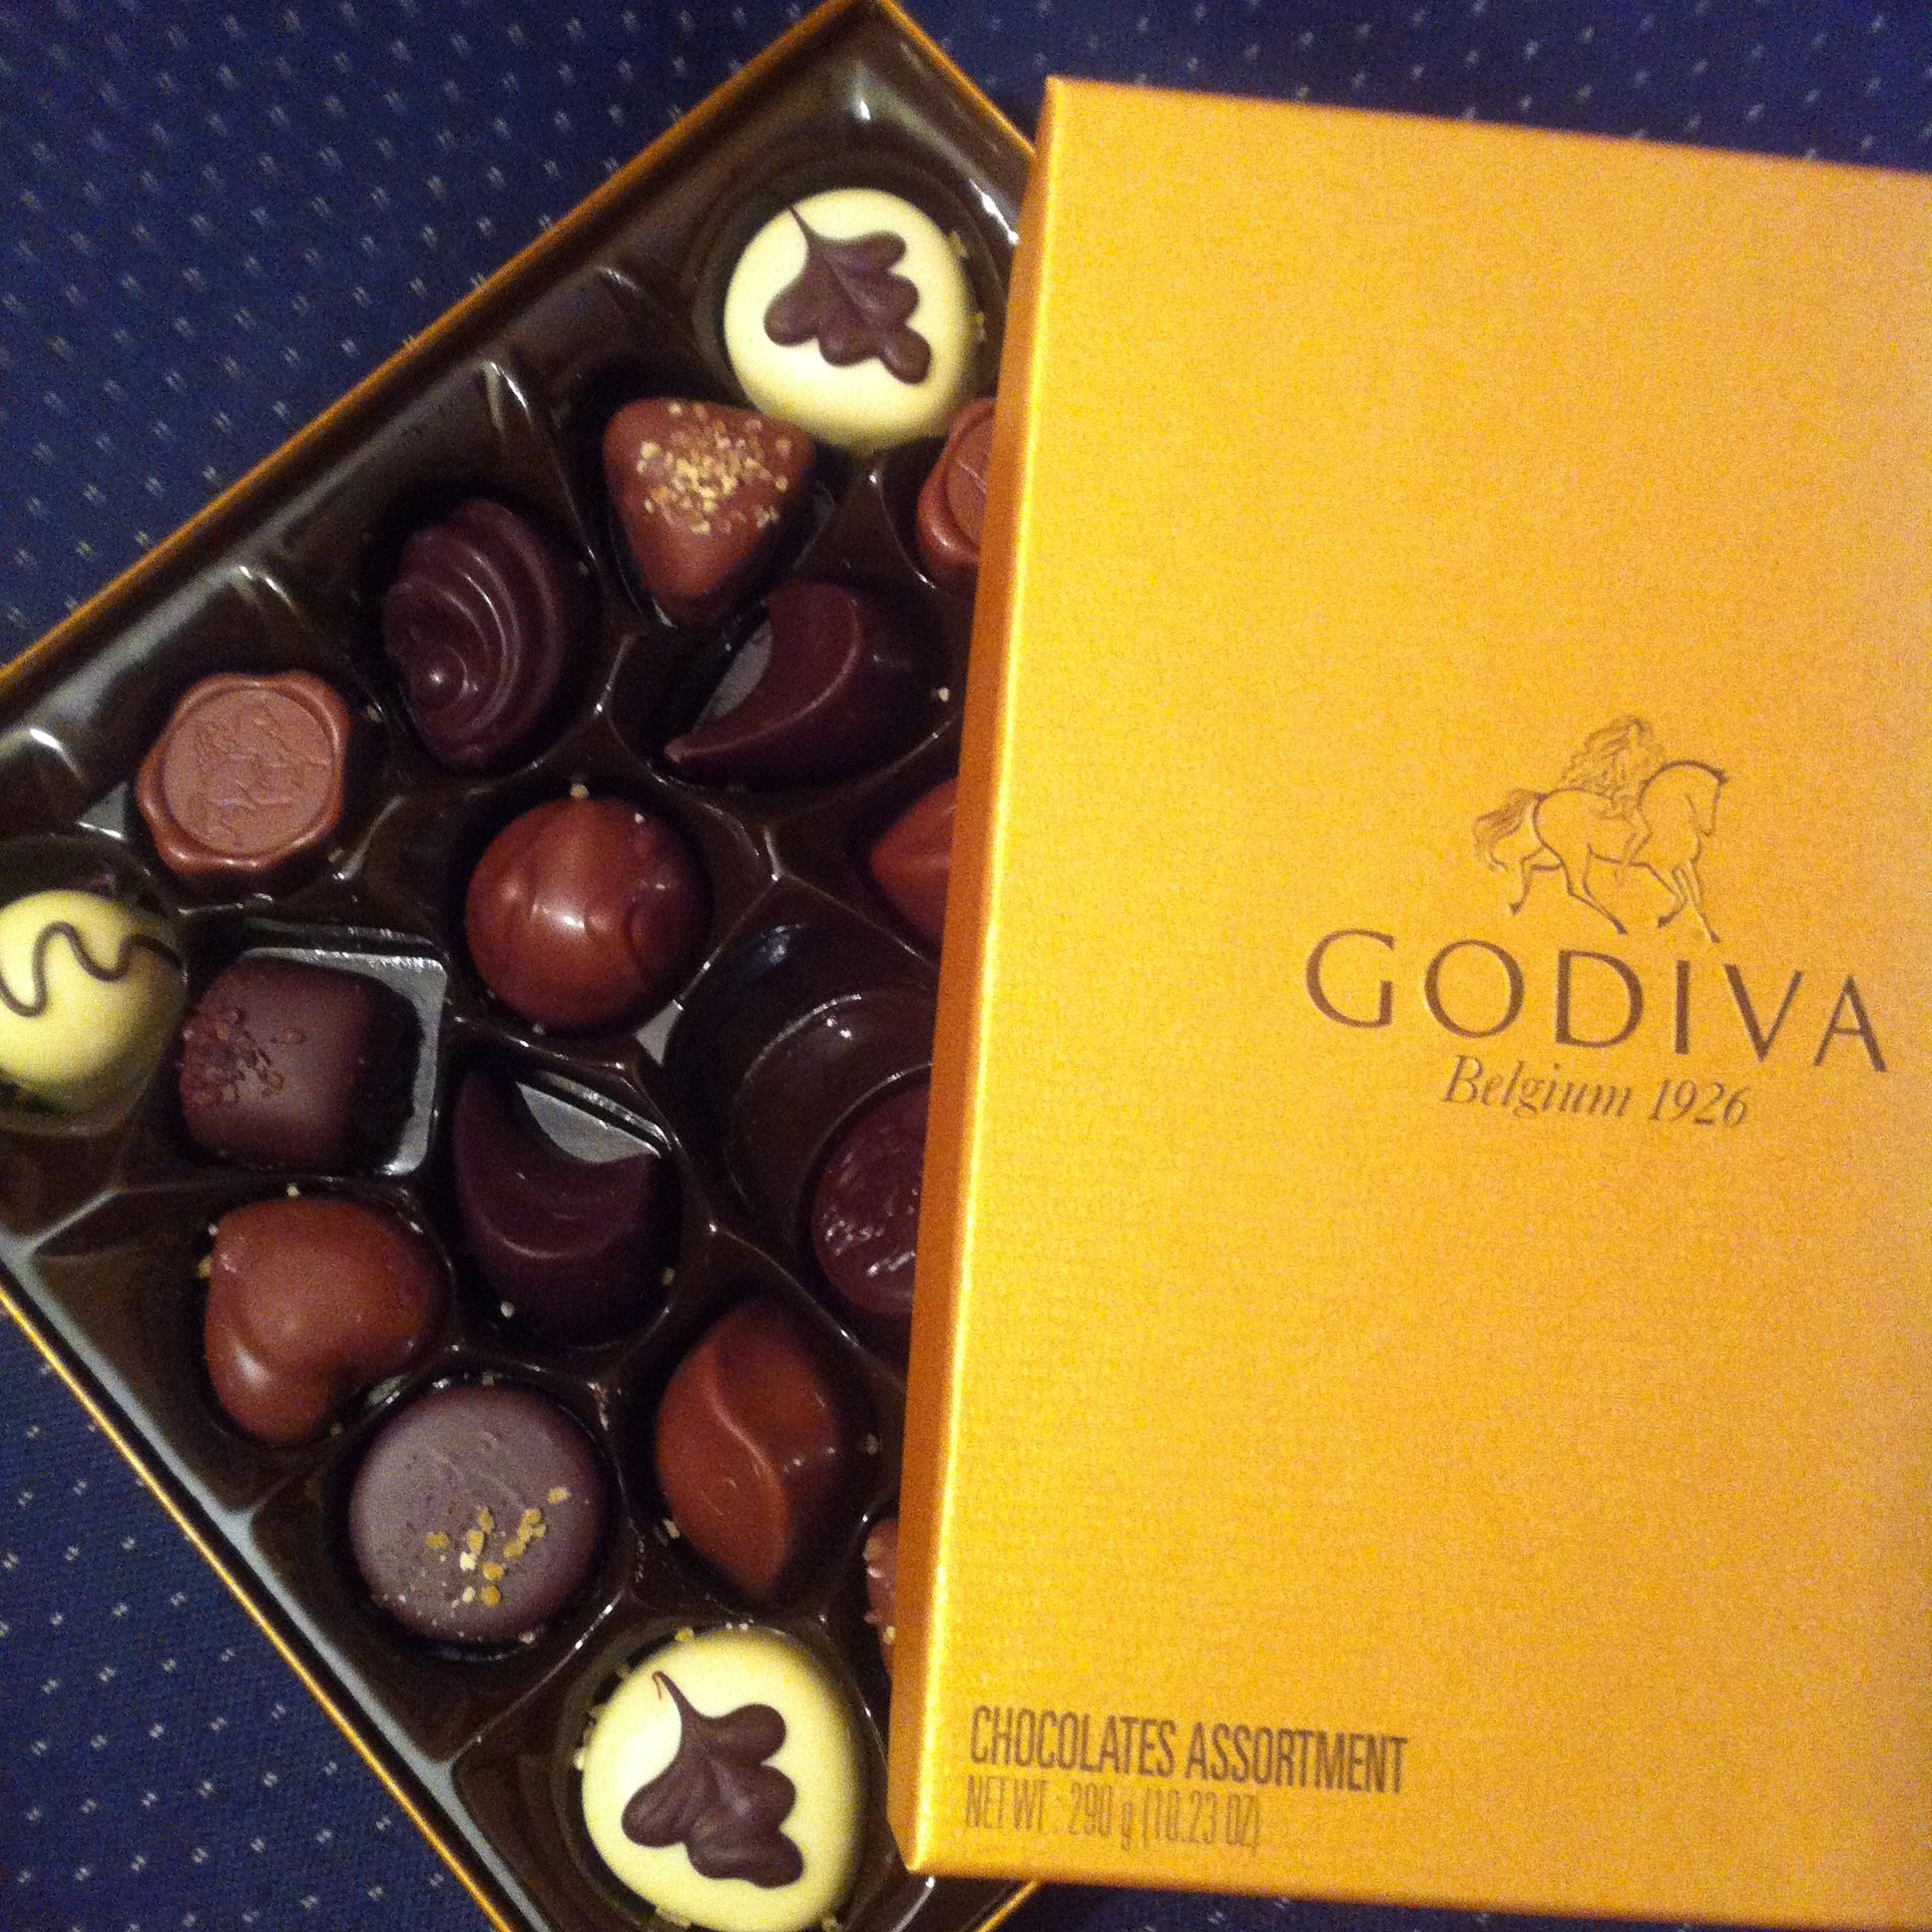 Browse all Godiva locations for the most indulgent gourmet chocolates, truffles, holiday gifts and more. Providing personalized chocolate gifts & baskets for over 80 years.